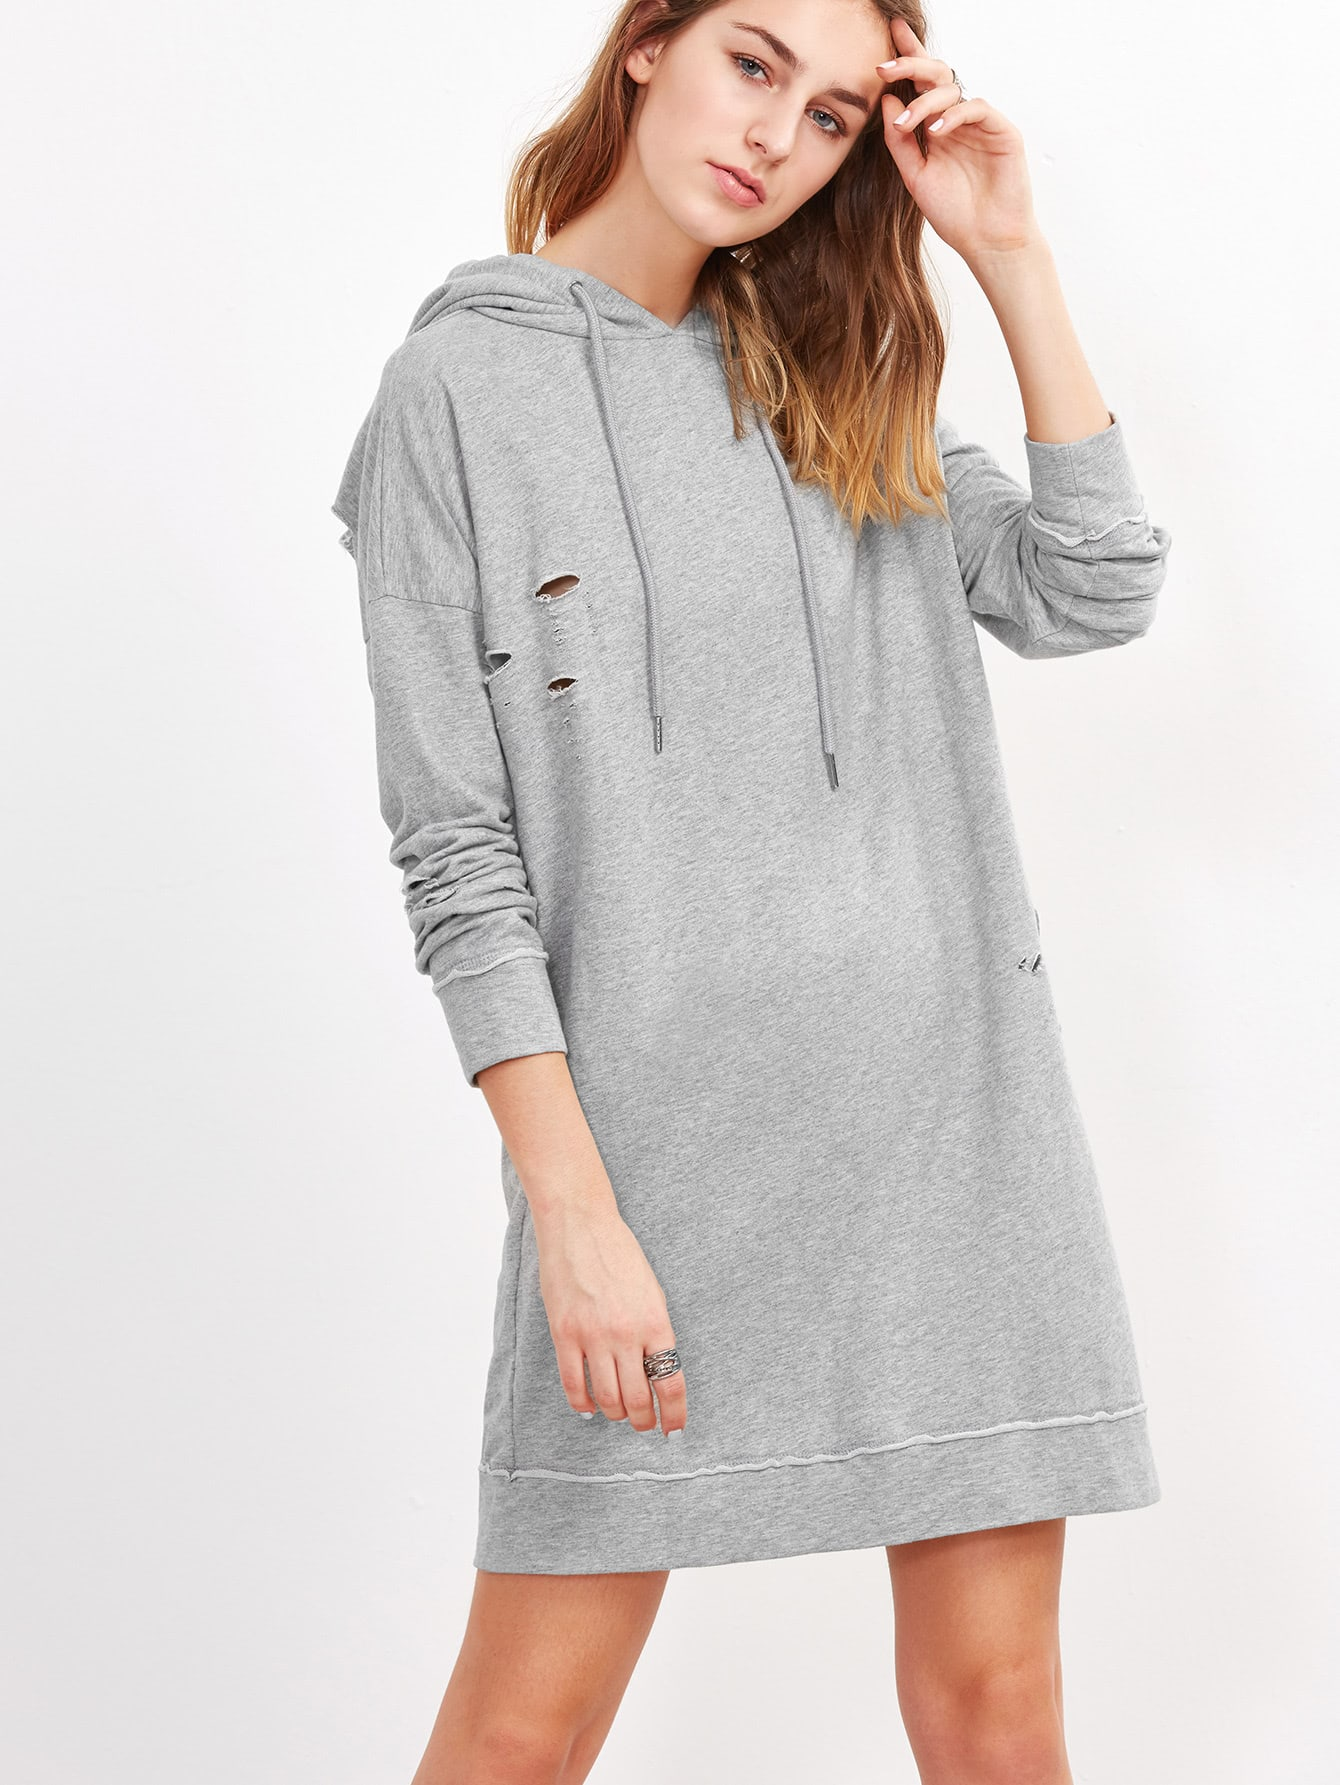 Heather Grey Drop Shoulder Ripped Hoodie Dress rebecca tatti w15060175353